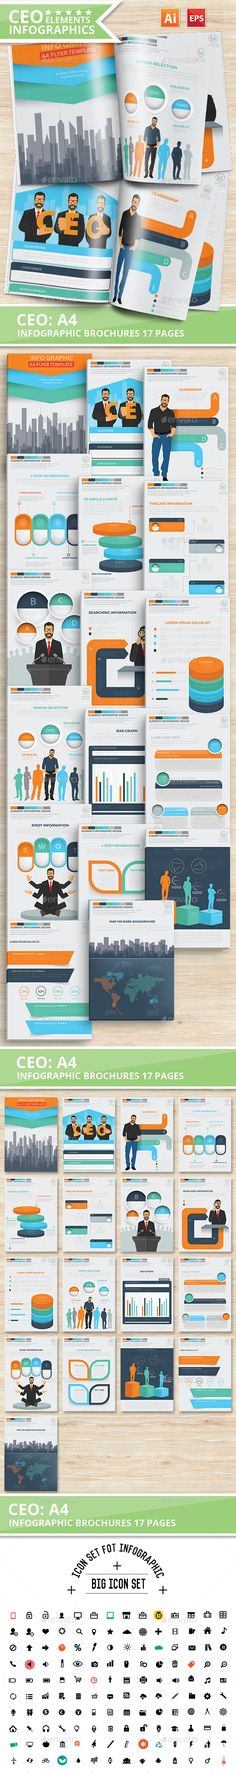 17 Pages Info Graphic Elements Design | Info graphics, Graphics ...